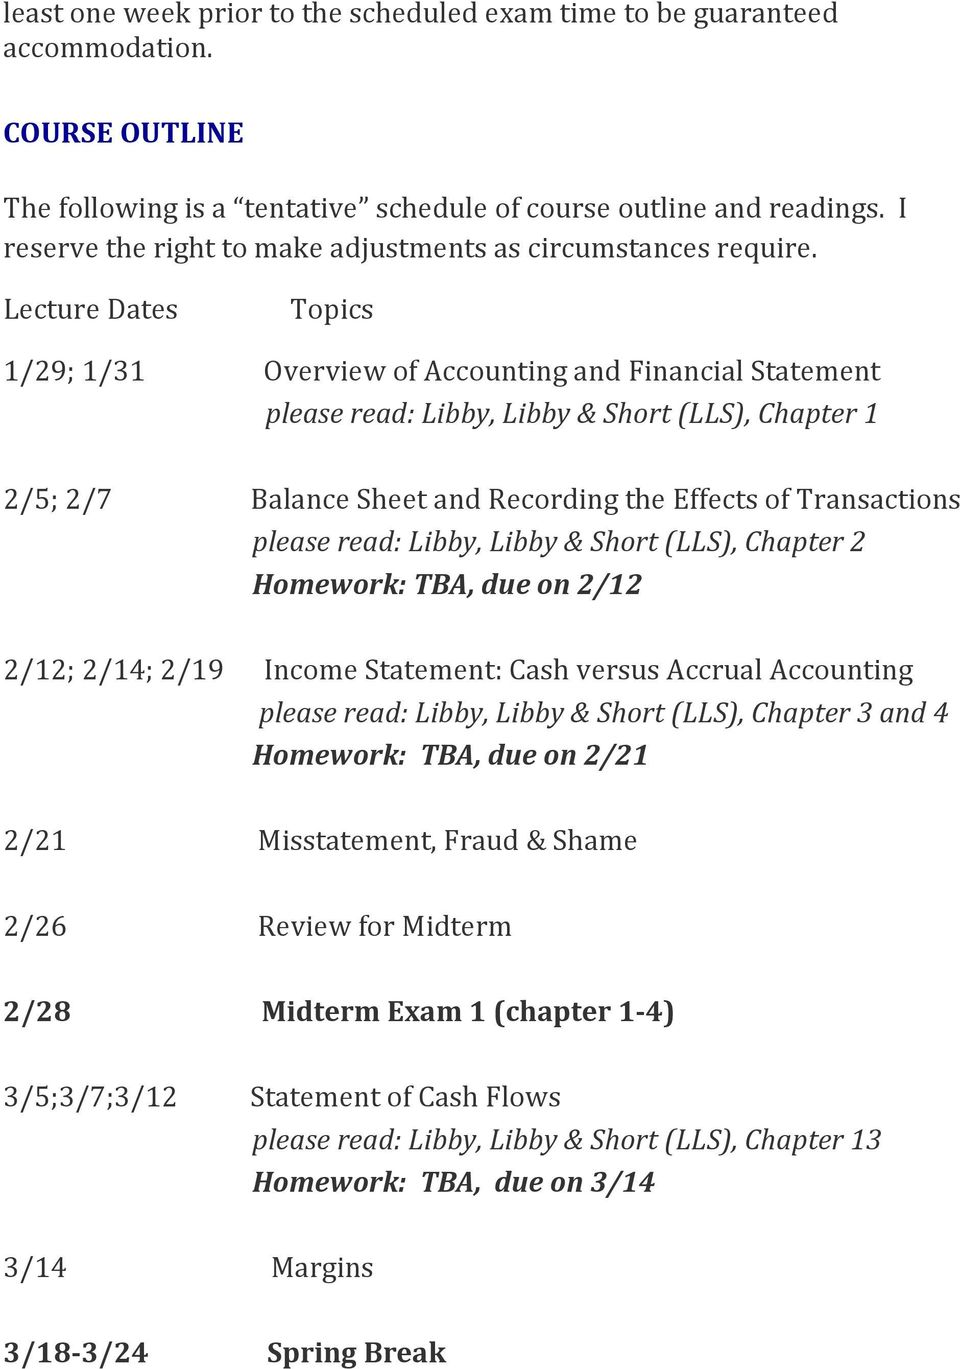 Lecture Dates Topics 1/29; 1/31 Overview of Accounting and Financial Statement please read: Libby, Libby & Short (LLS), Chapter 1 2/5; 2/7 Balance Sheet and Recording the Effects of Transactions